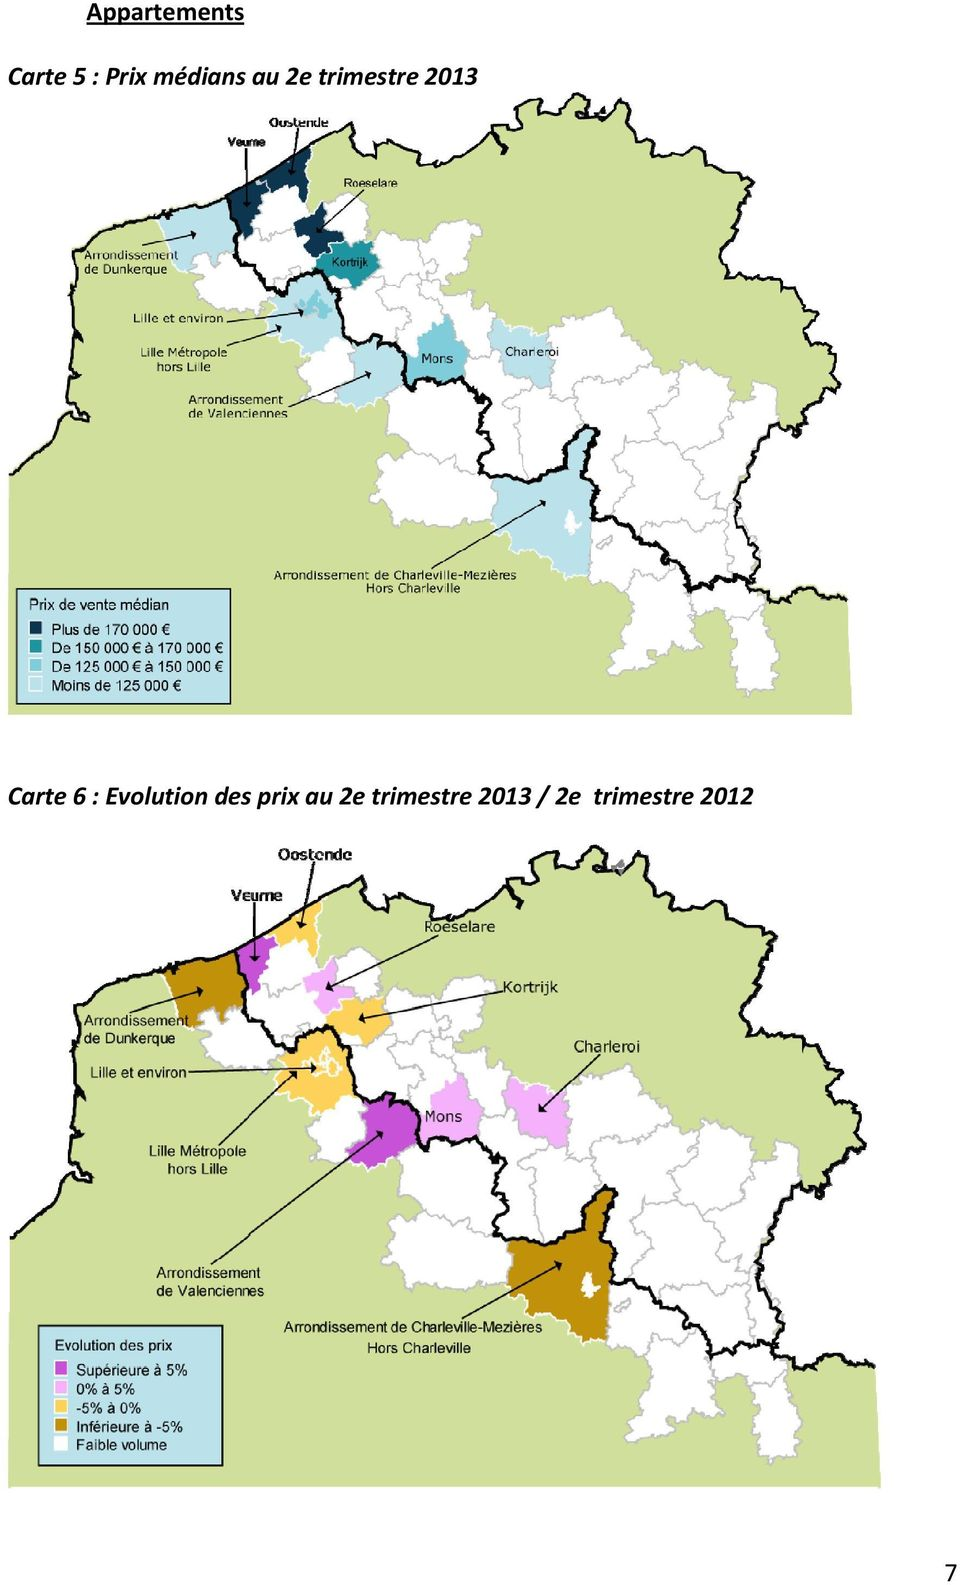 Carte 6 : Evolution